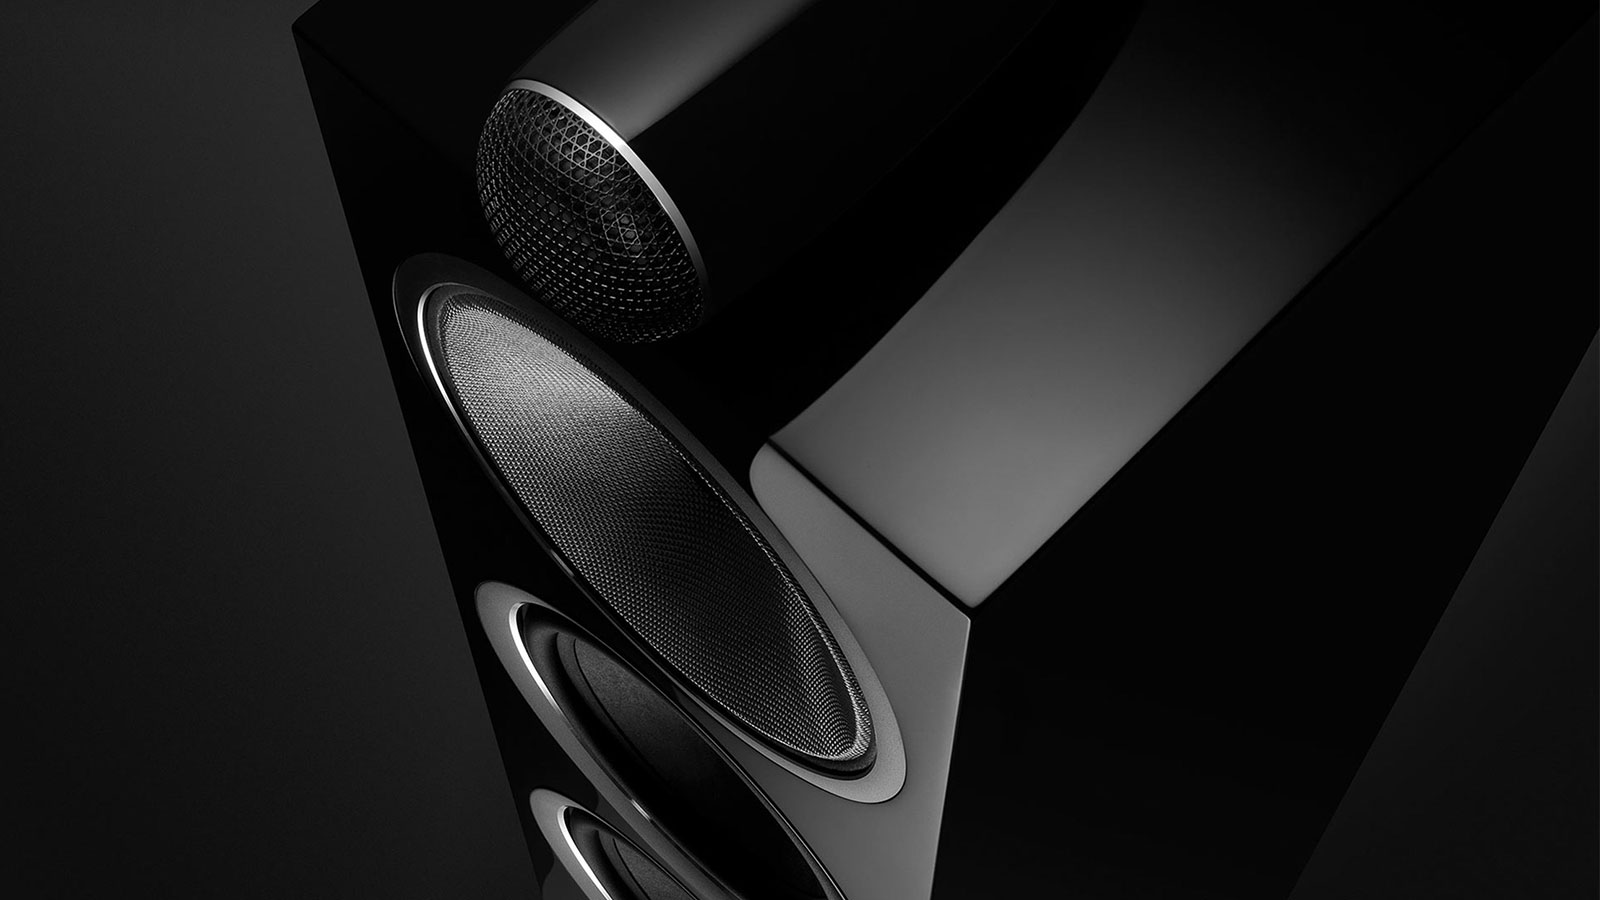 Bowers & Wilkins 705 and 702 Speakers